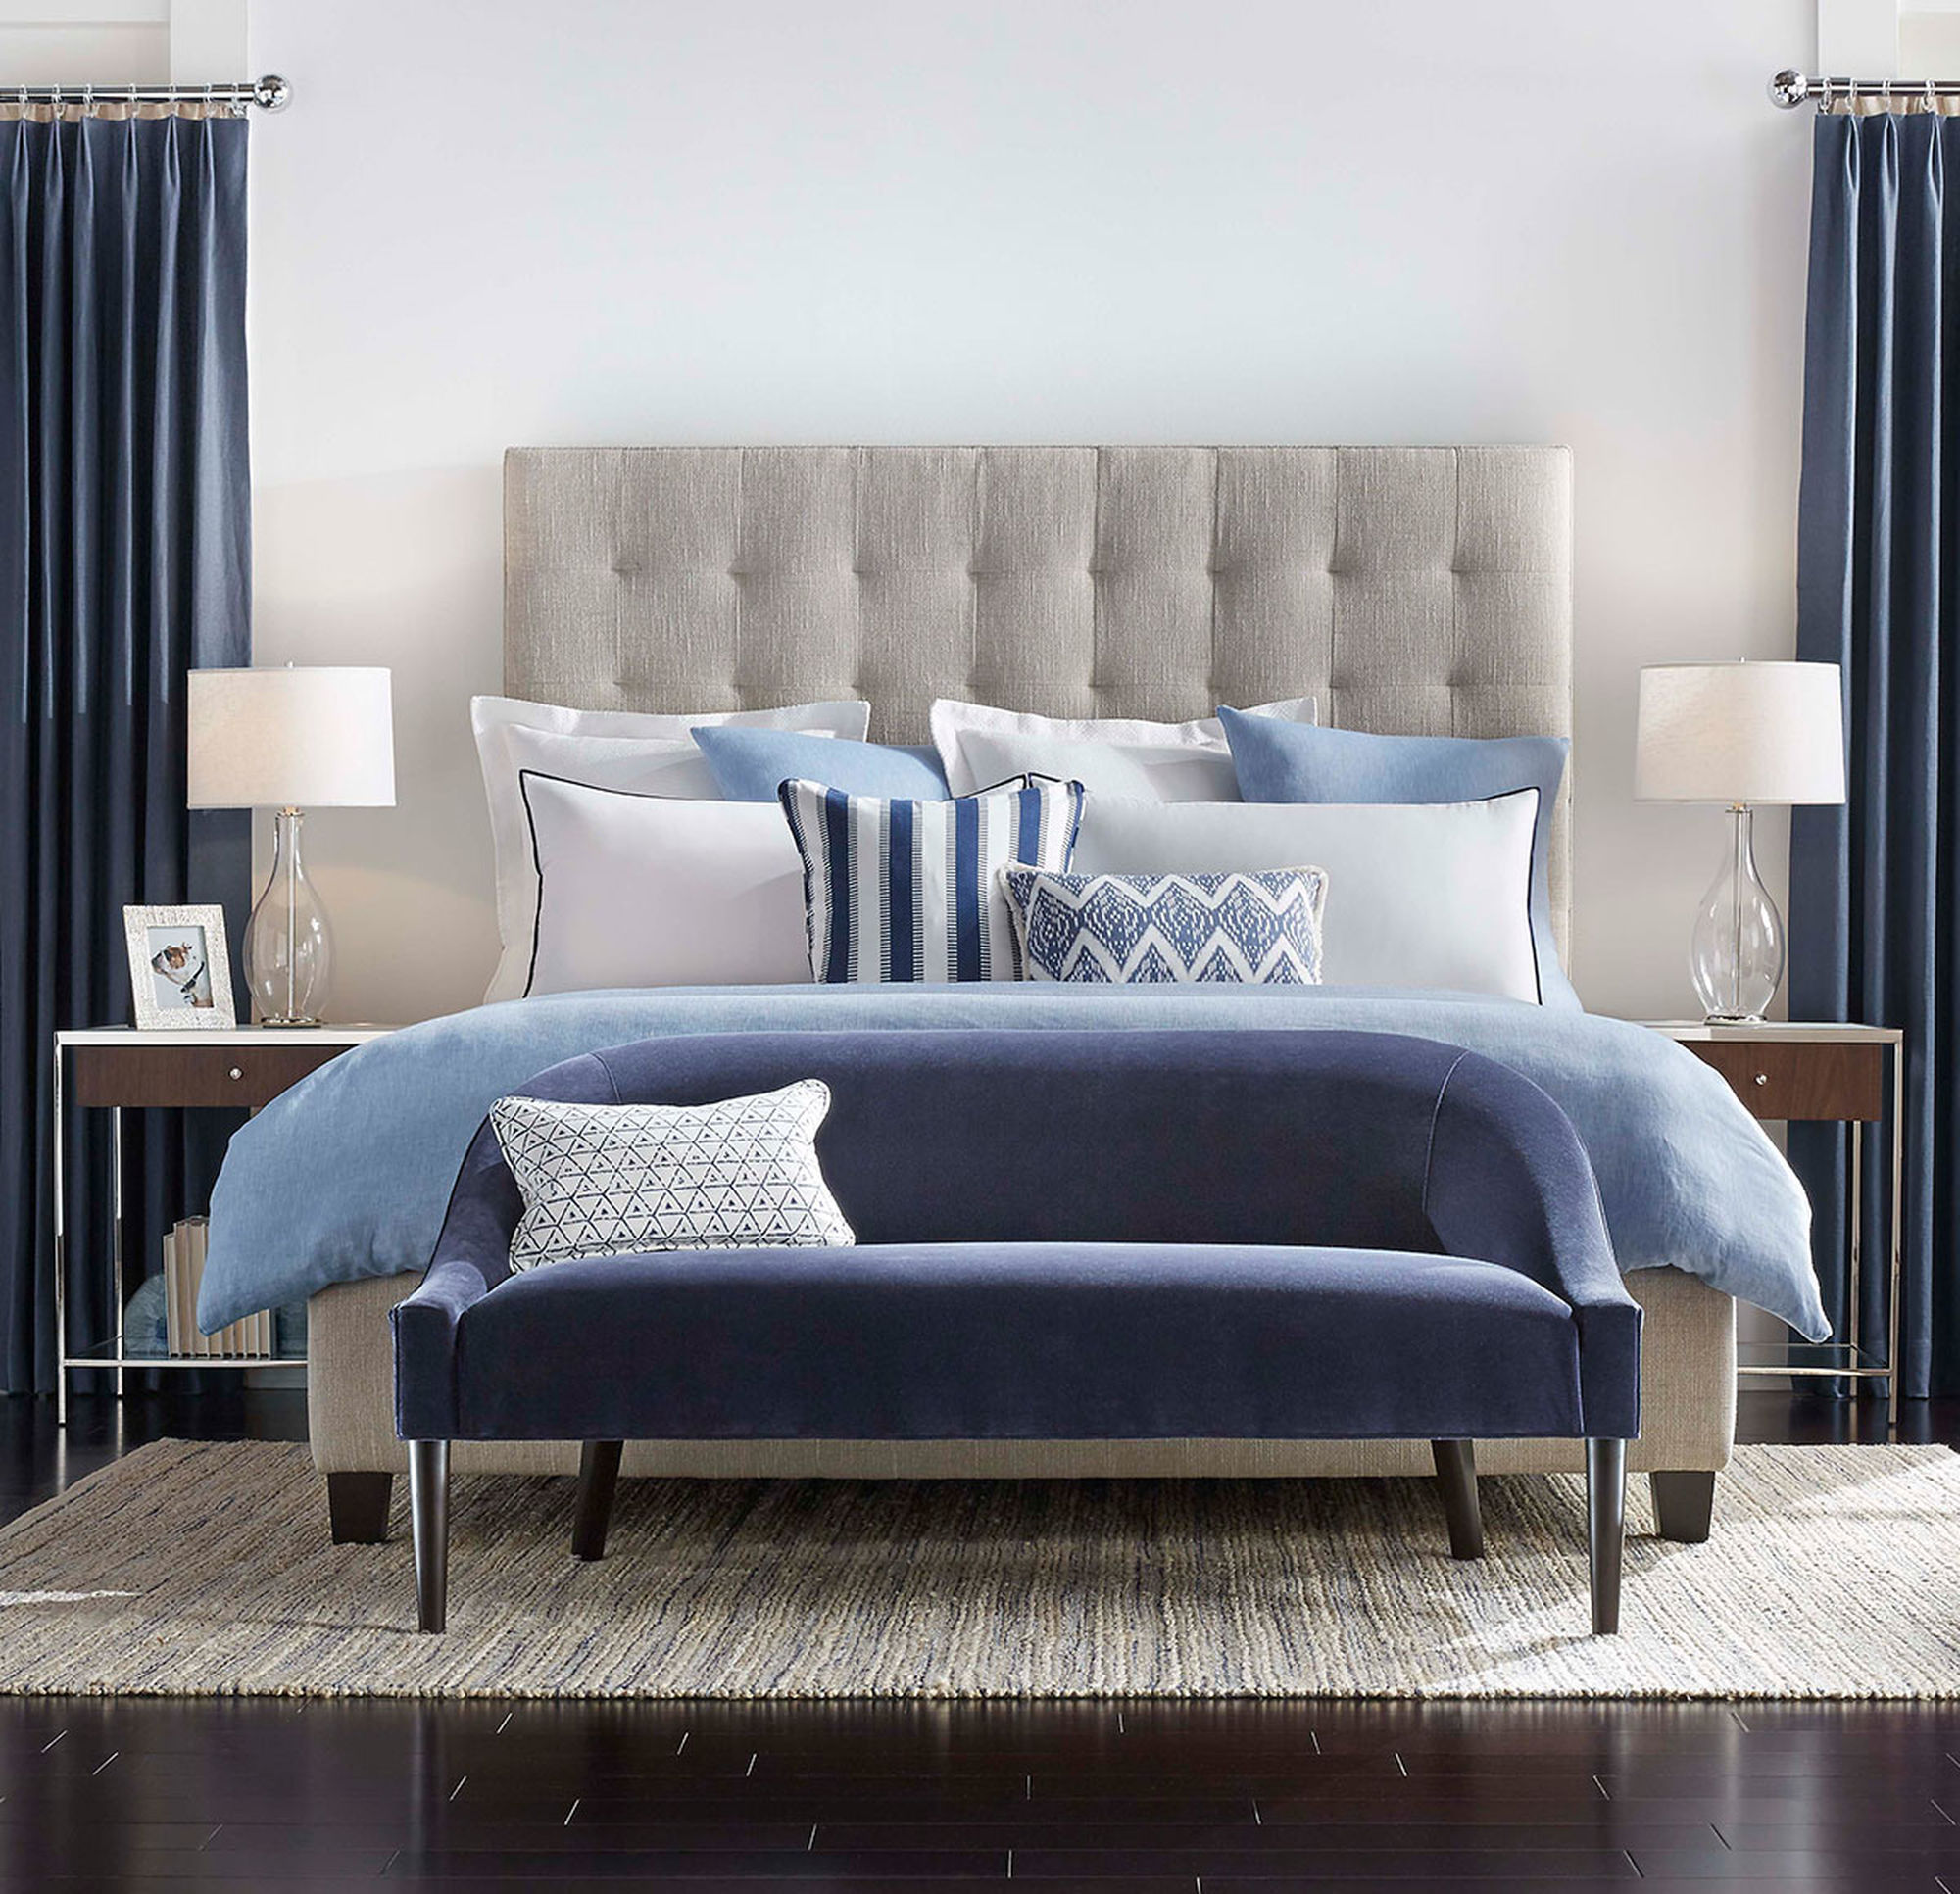 Make your bedroom a place of extreme comfort with a quality bedroom sofa